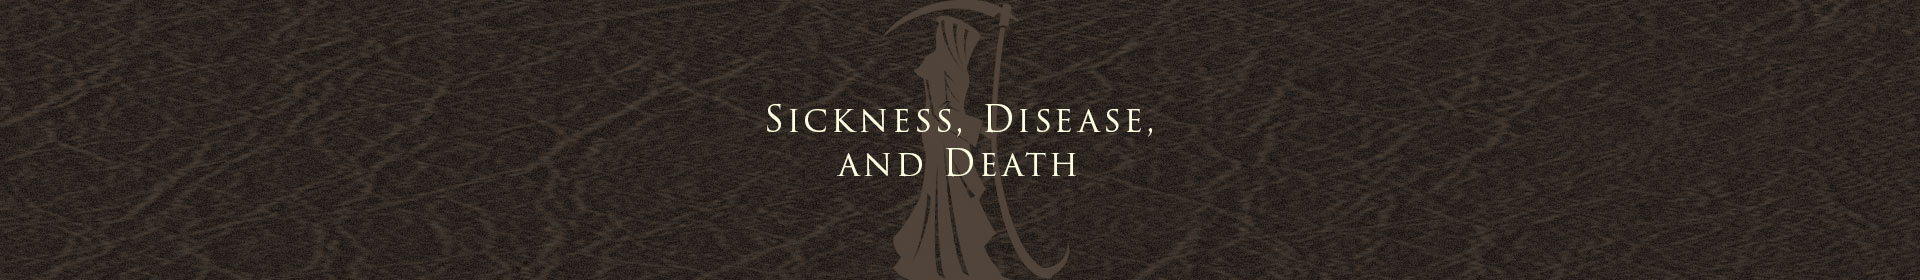 Sickness, Disease, and Death